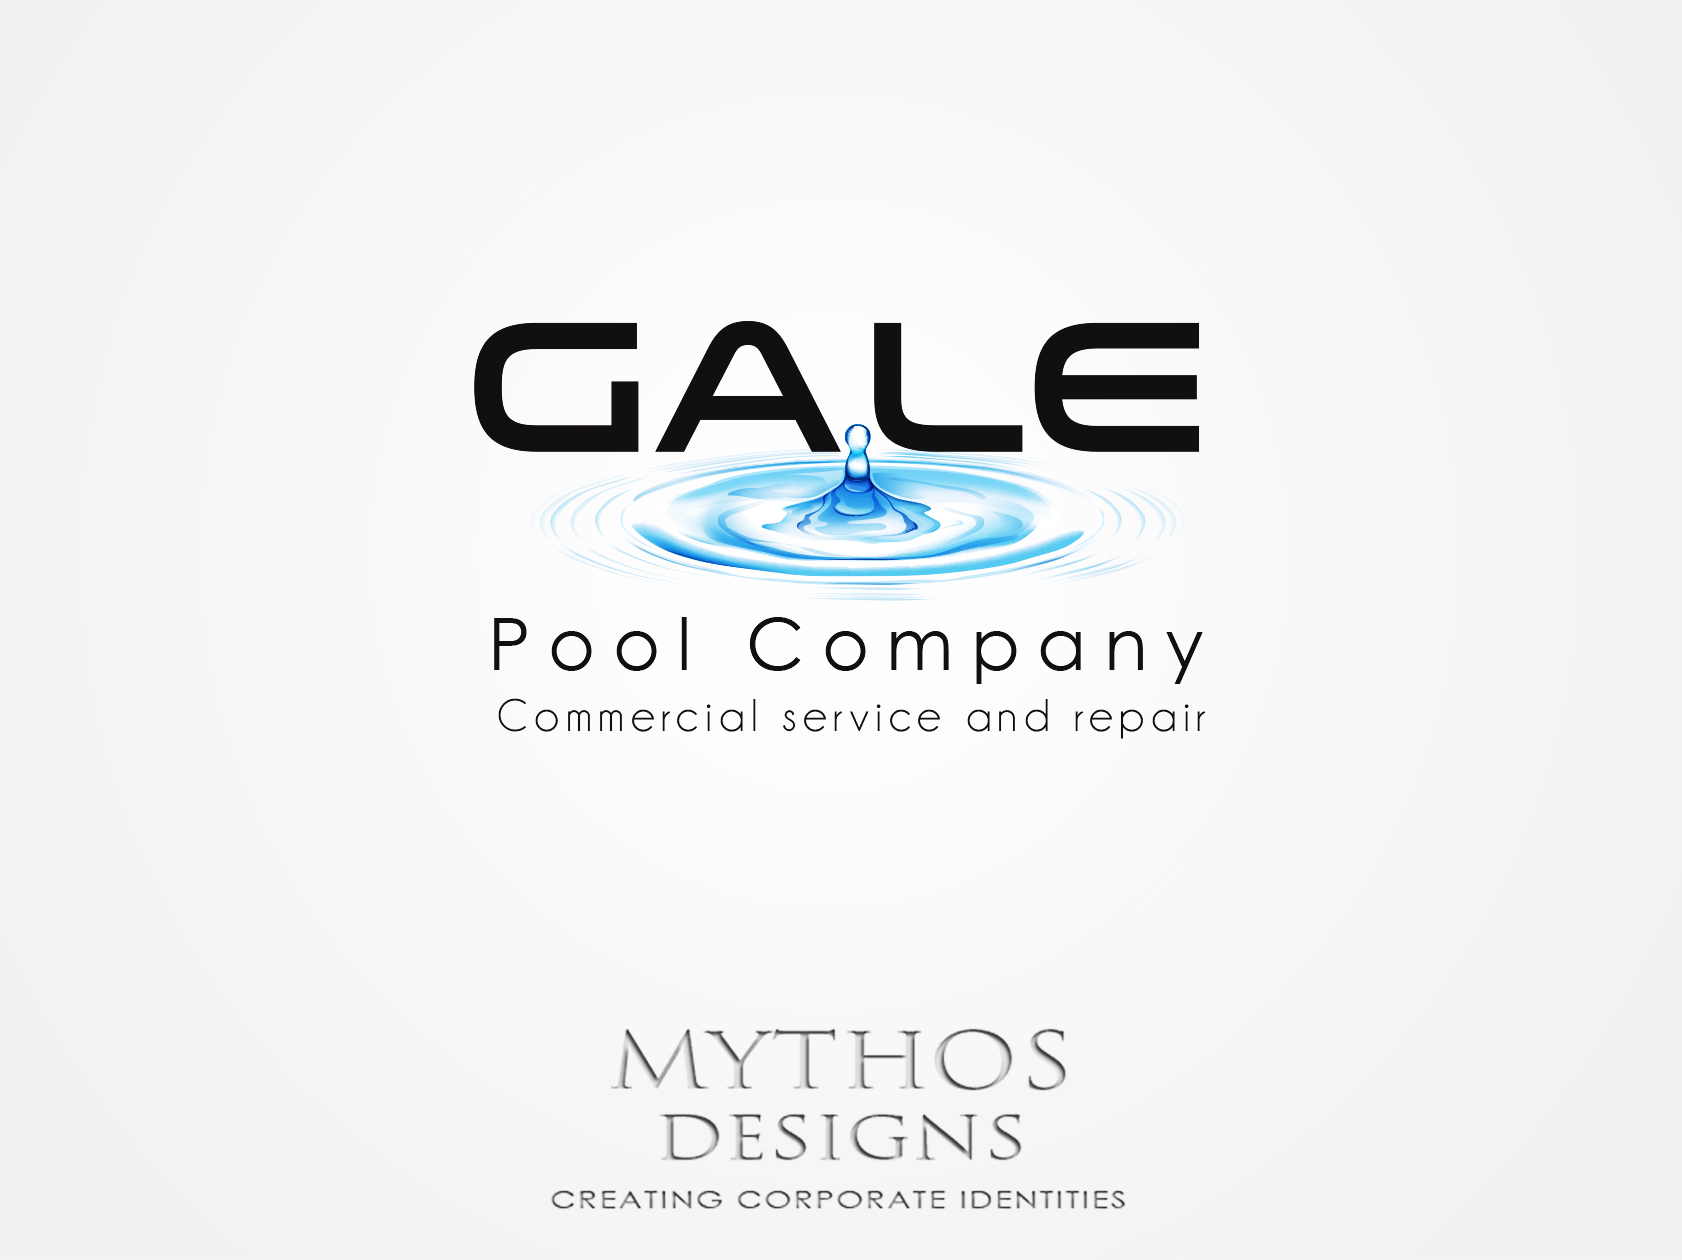 Logo Design by Mythos Designs - Entry No. 93 in the Logo Design Contest Imaginative Logo Design for Gale Pool Company.